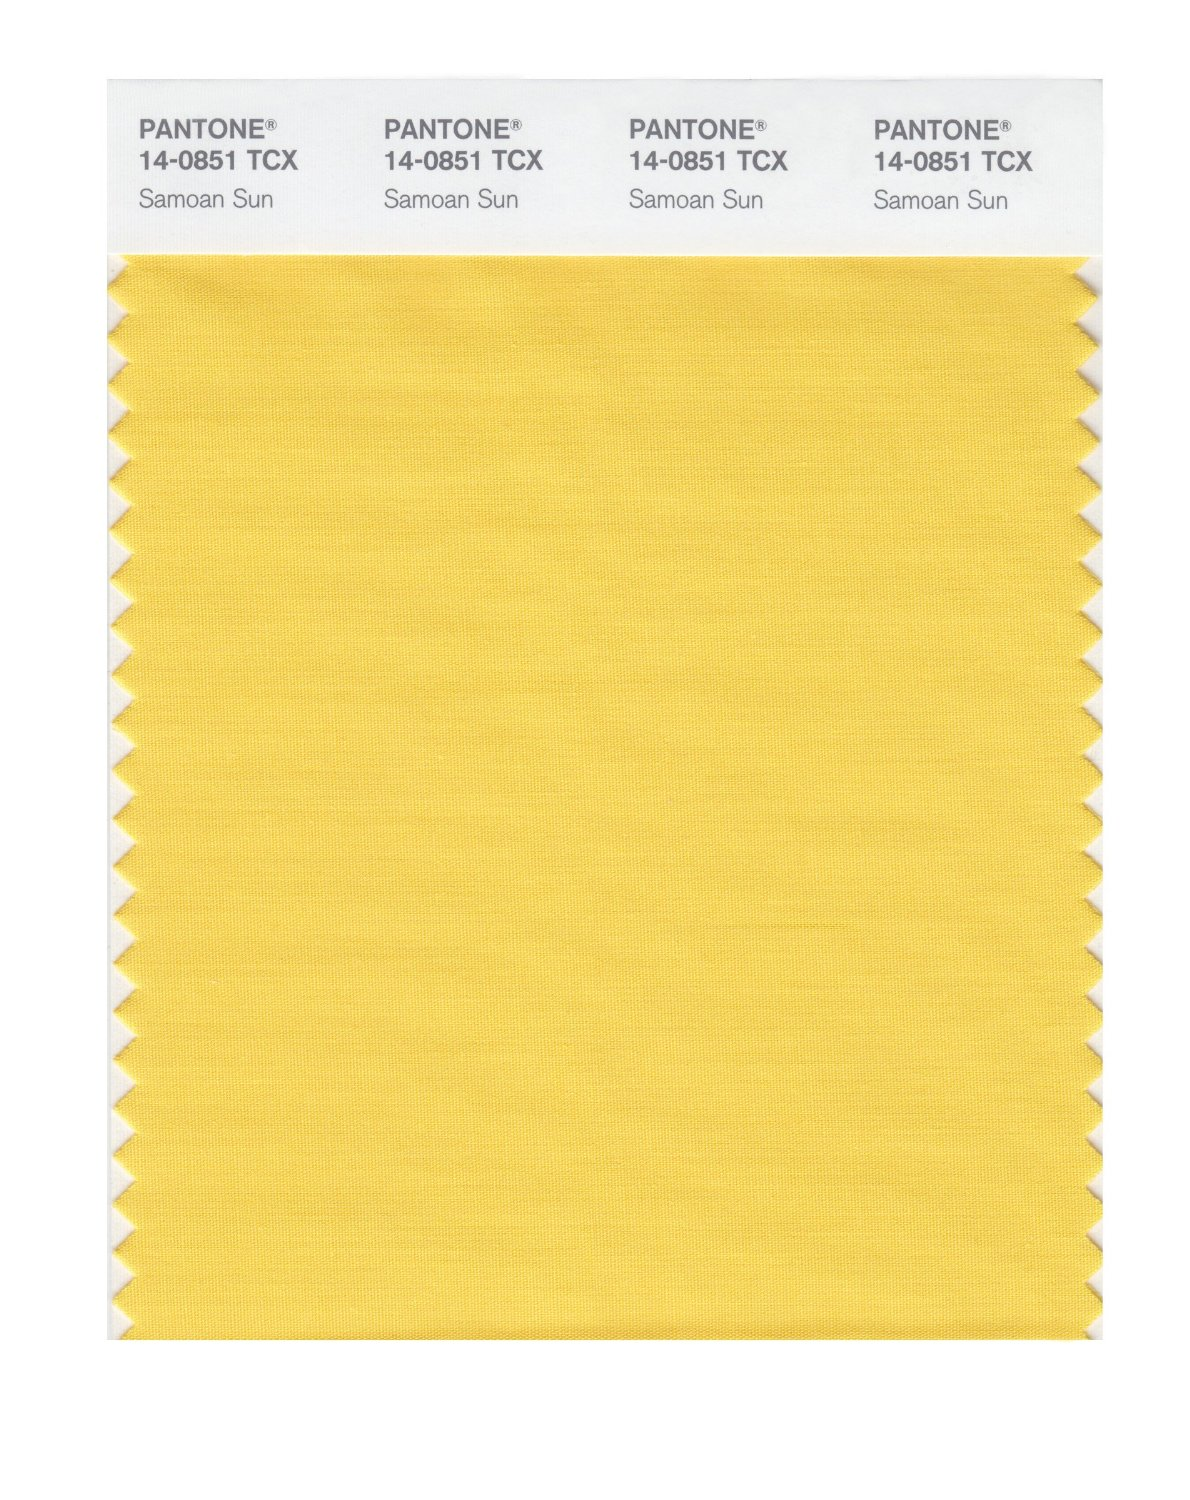 Pantone Smart Swatch 14-0851 Samoan Sun